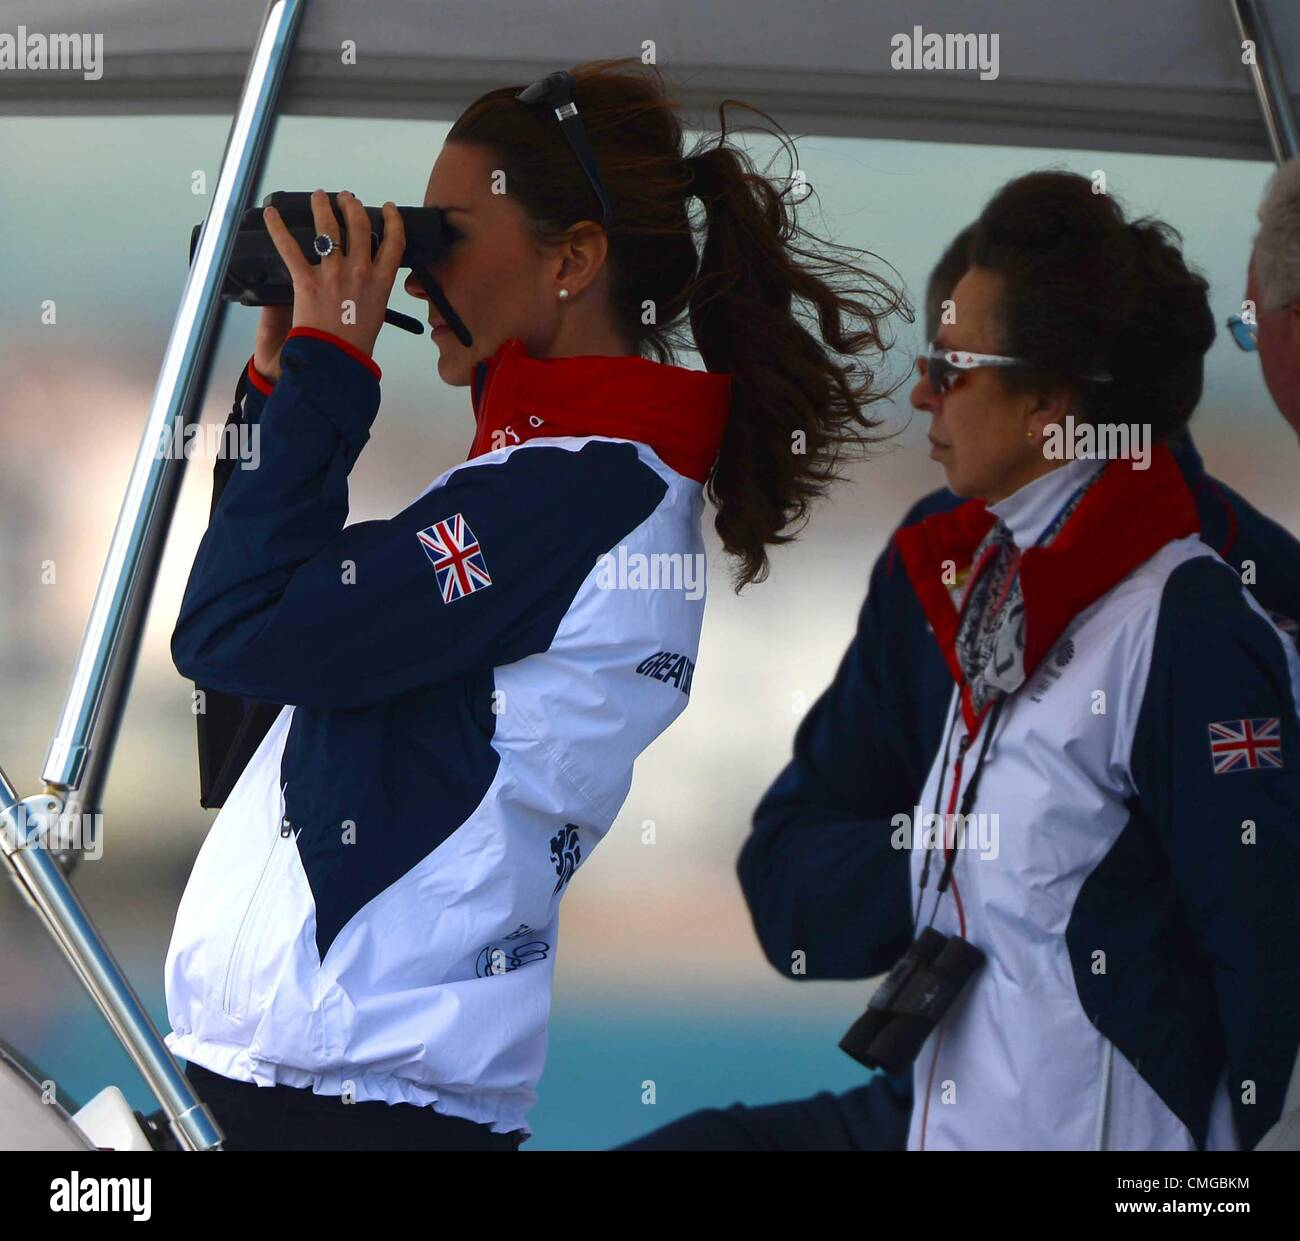 London 2012 Olympics, Kate Middleton visits the Olympic Sailing venue for the London 2012 Olympic Games Watching - Stock Image